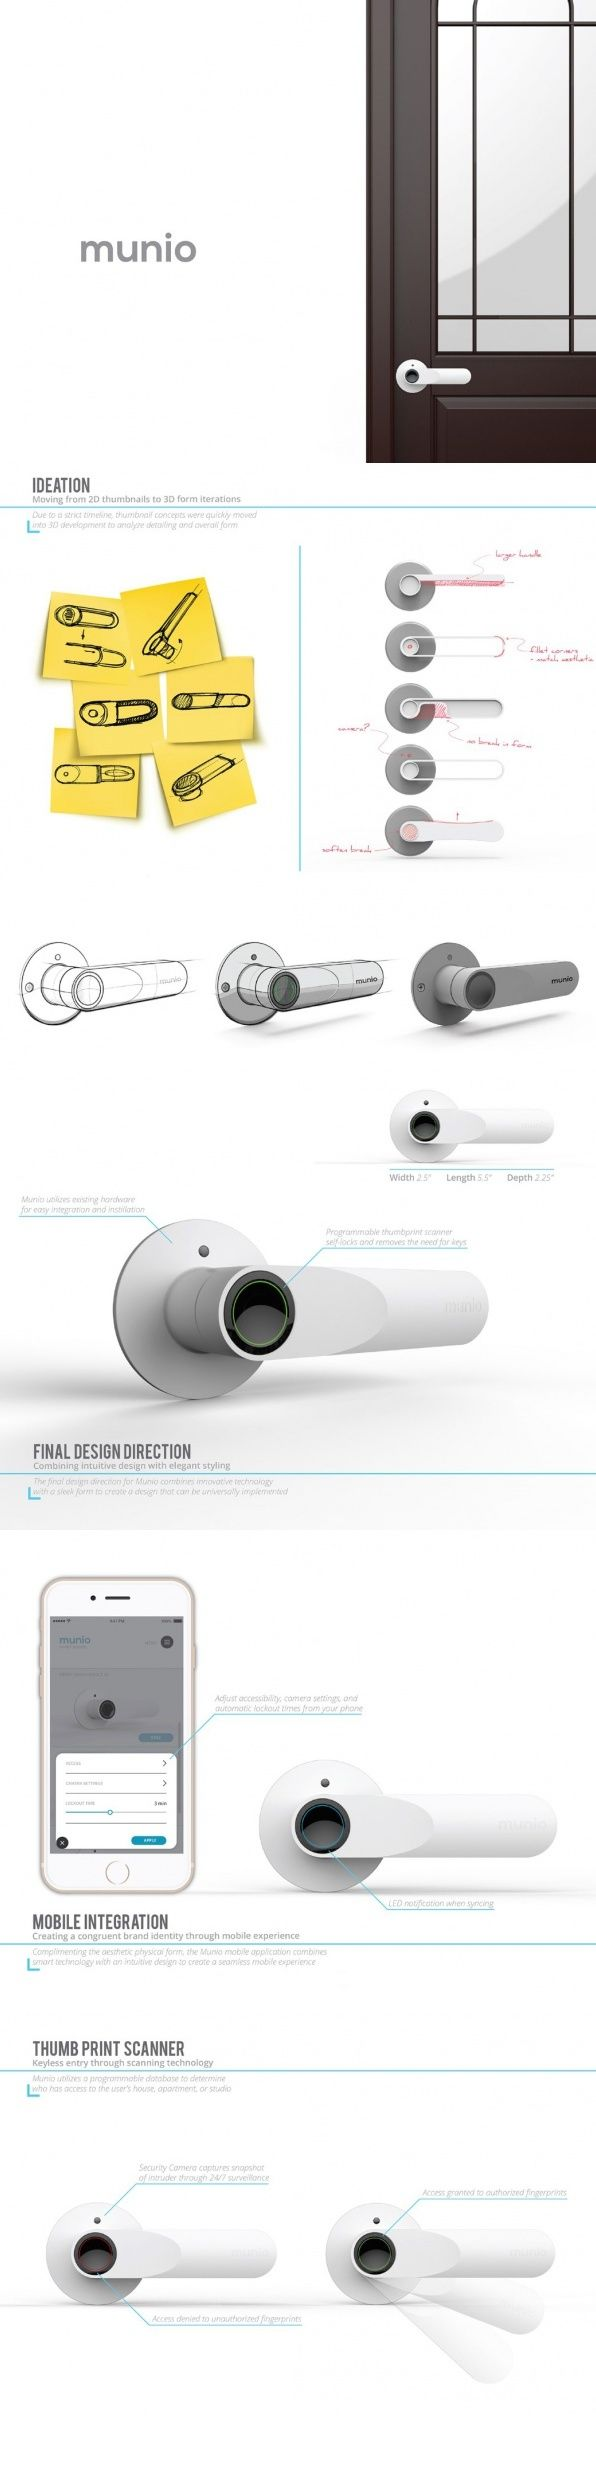 Security is probably one of the most brilliant applications of IoT technology. The MUNIO Smart handle brings simplicity of use to this equation to make a door handle that's virtually trespasser-proof wherein it uses fingerprint recognition technology along with a surveillance camera to engage/disengage the locking mechanism on the door. #Decor #Door #YankoDesign